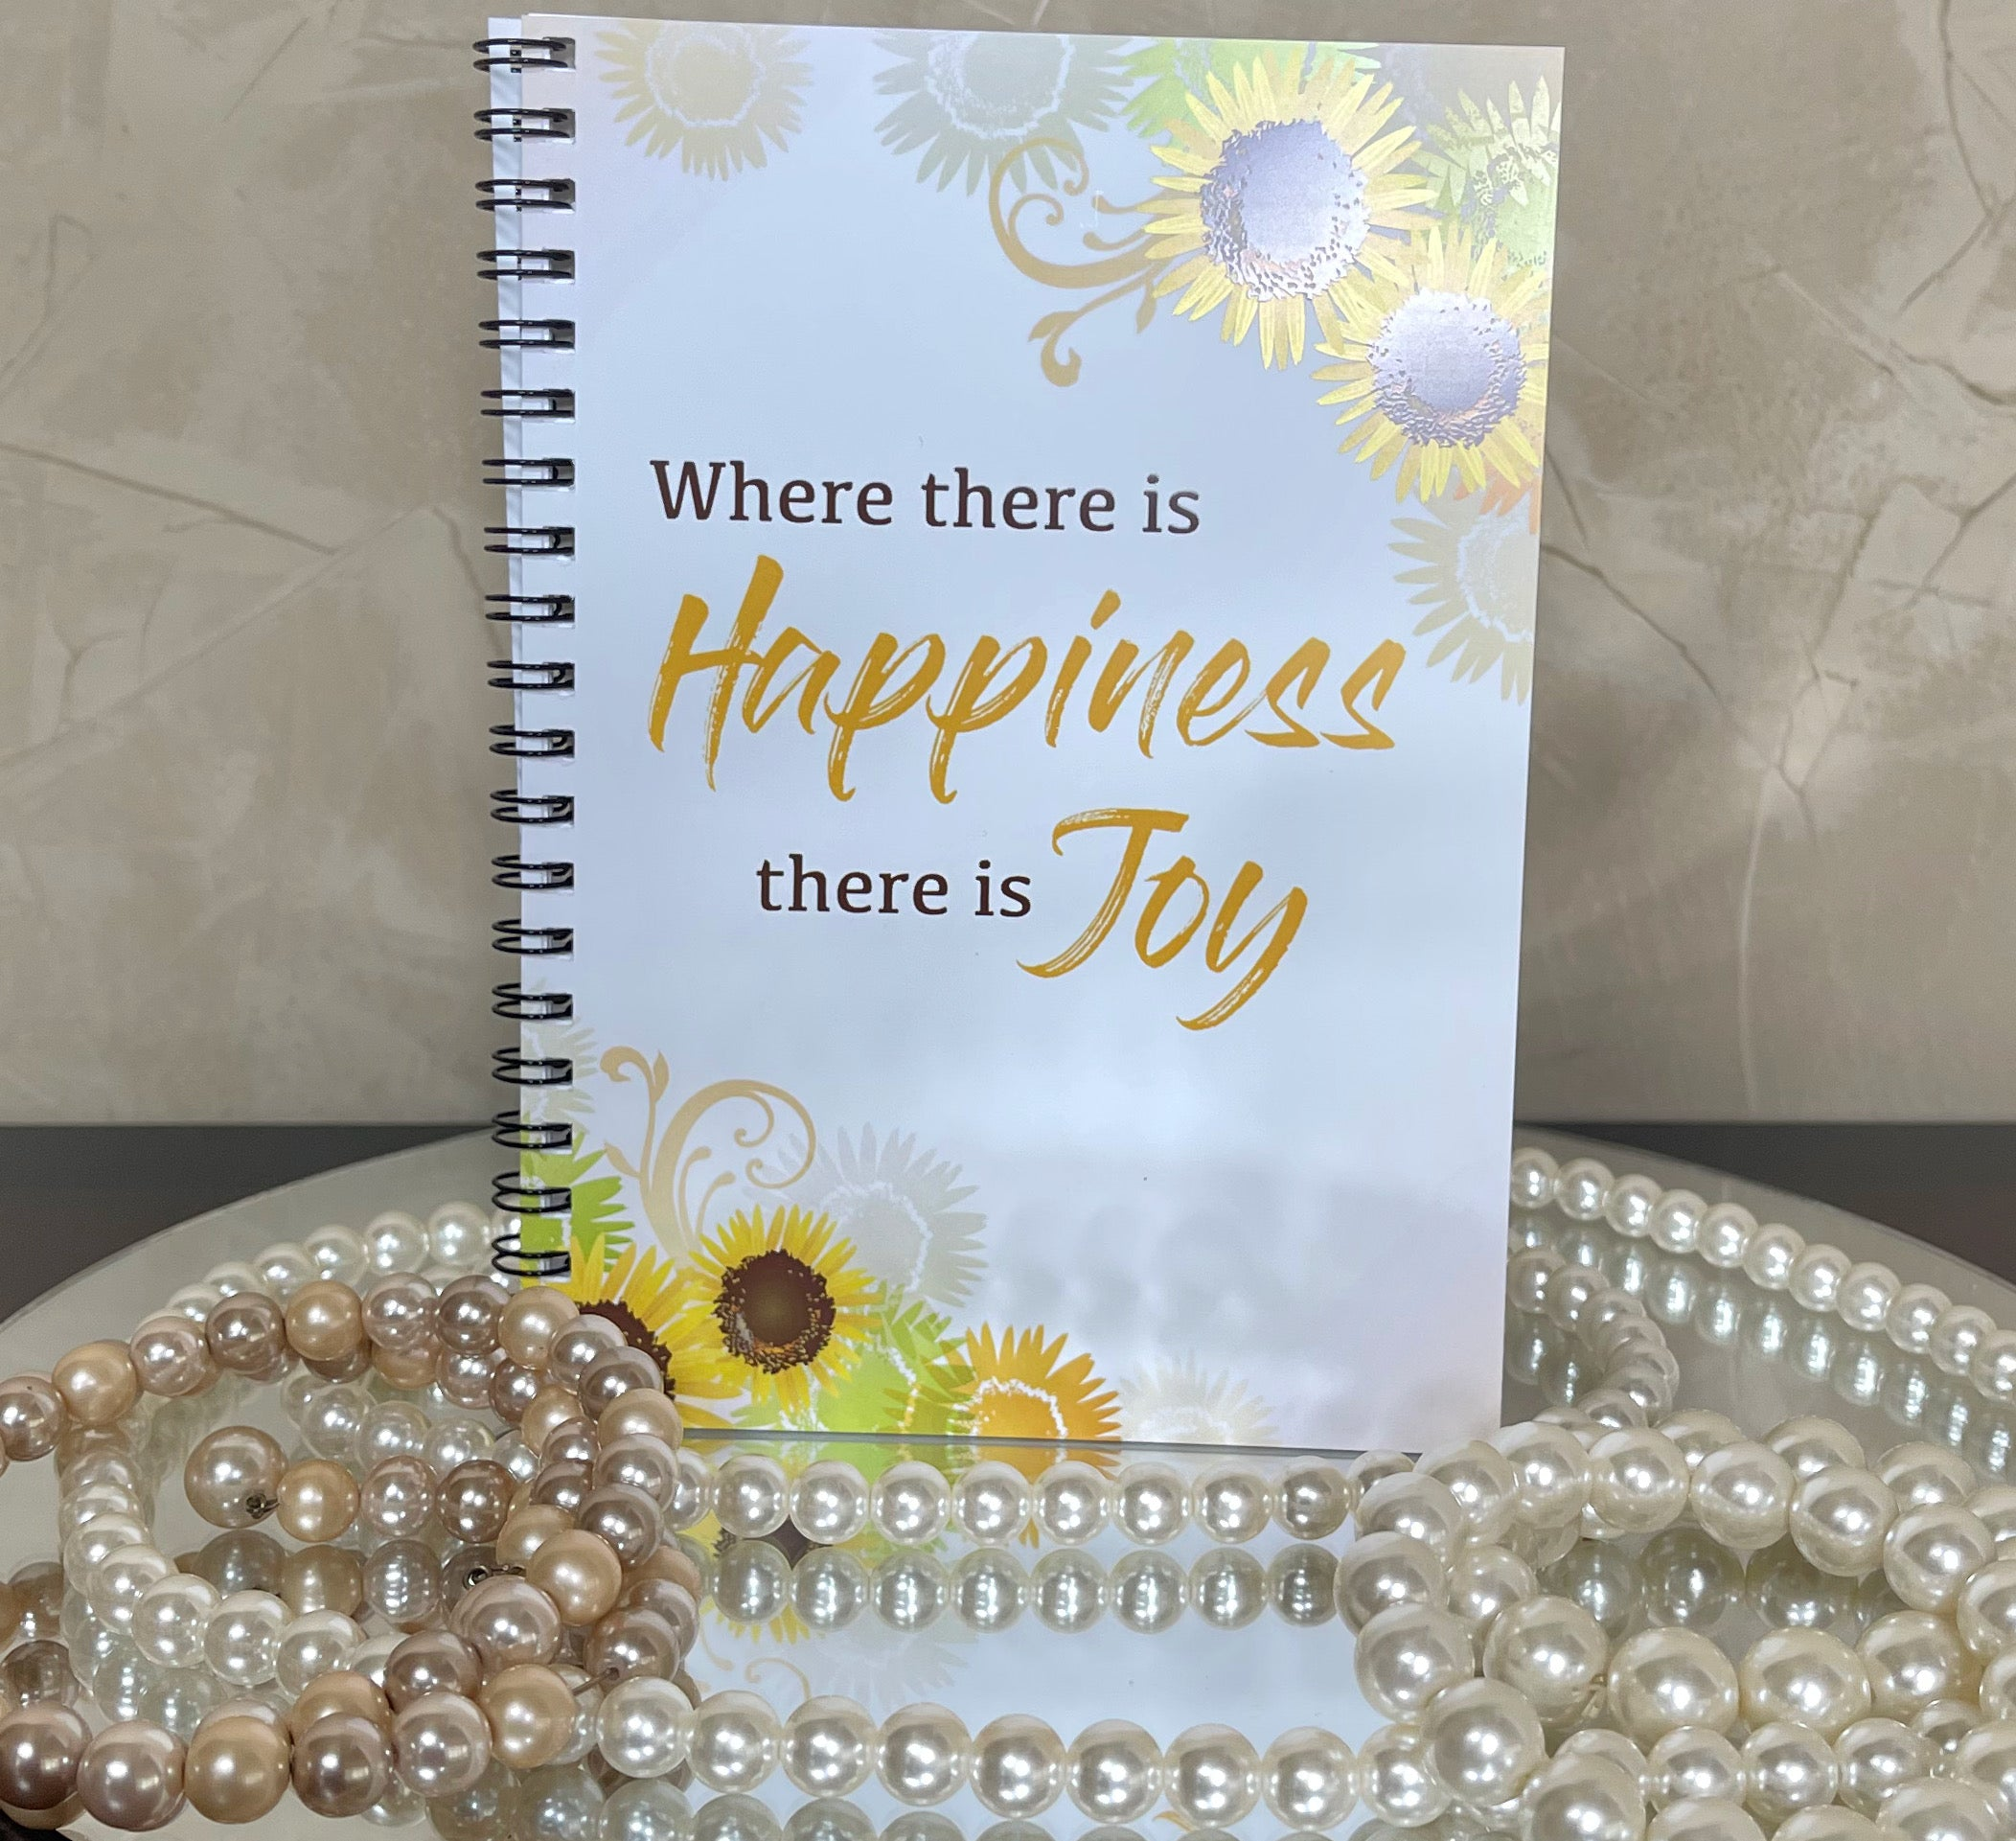 Happiness Joy Stationery Set *Limited Quantity